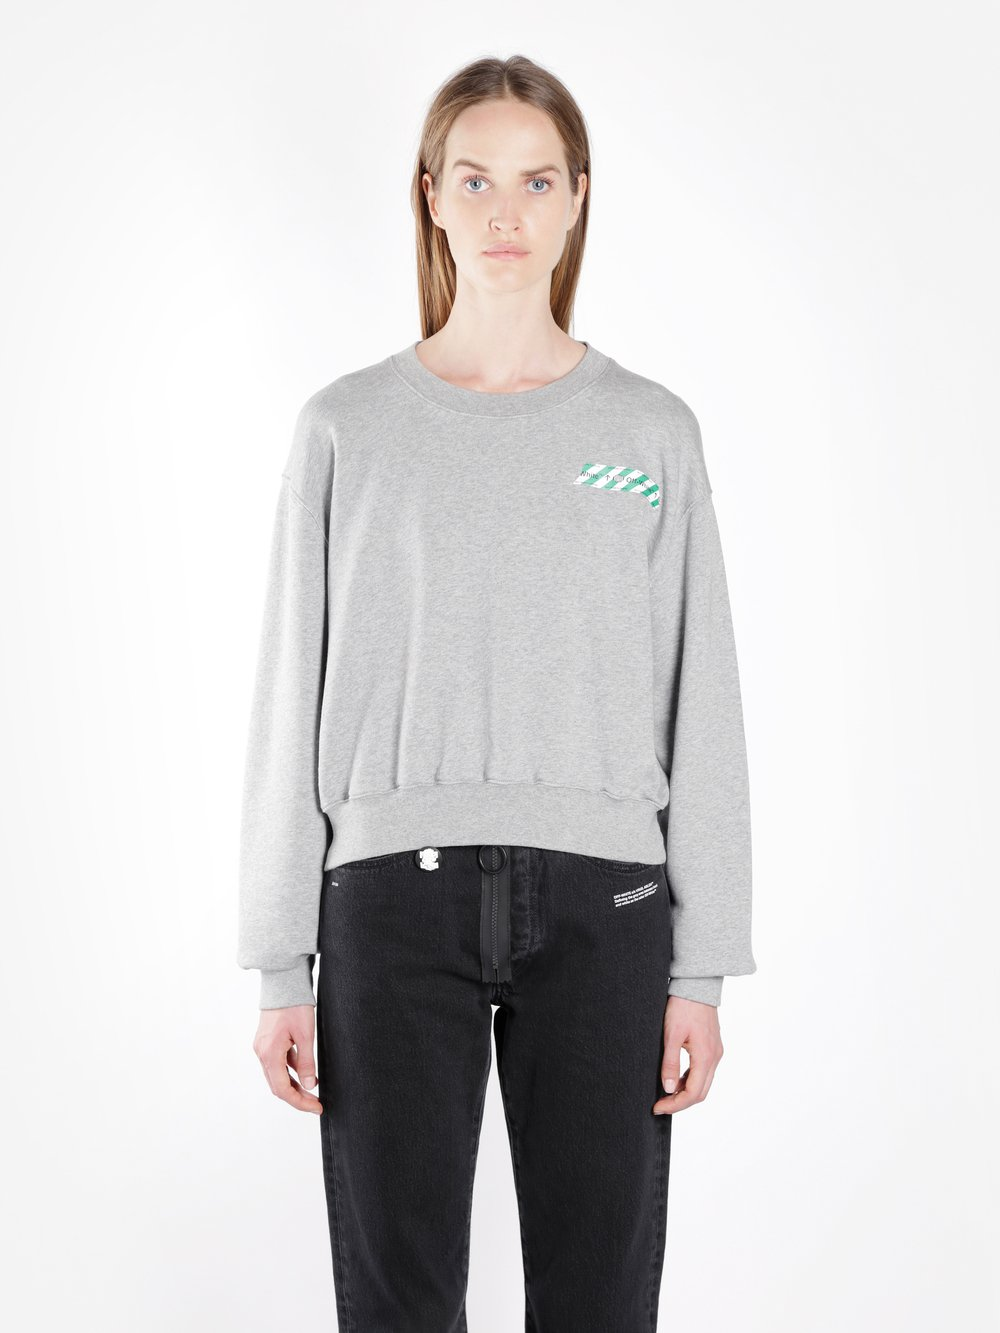 OFF WHITE C/O VIRGIL ABLOH WOMEN'S GREY TAPE CROPPED SWEATER